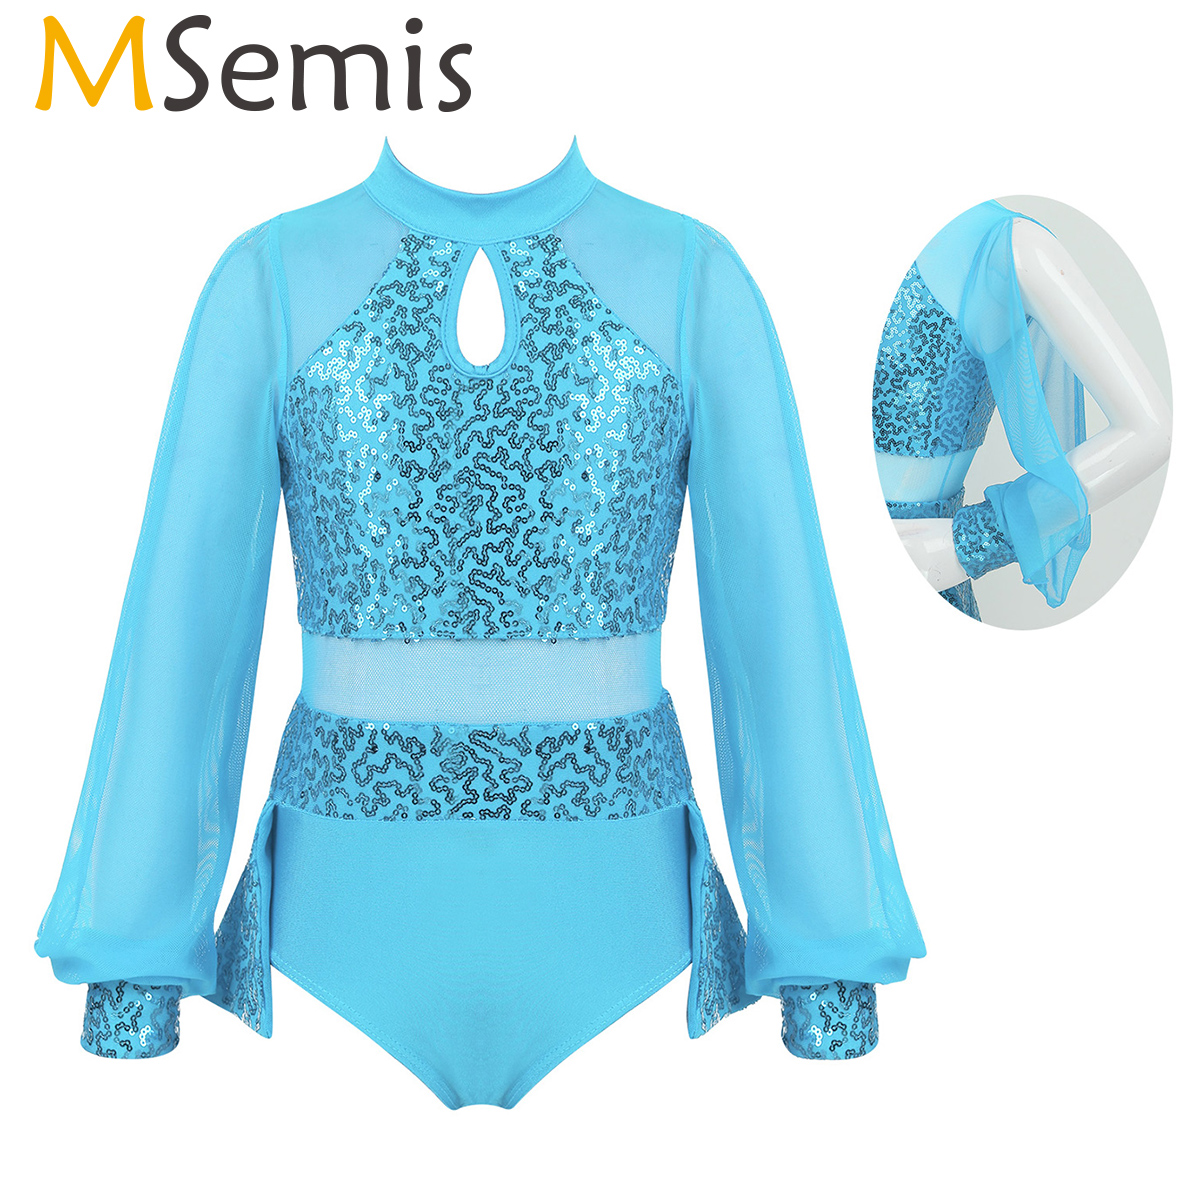 MSemis Kids Toddler Girls Ballroom Dance Costume Competition Dresses Split Sequins Ice Figure Skating Dress Gymnastics Leotard